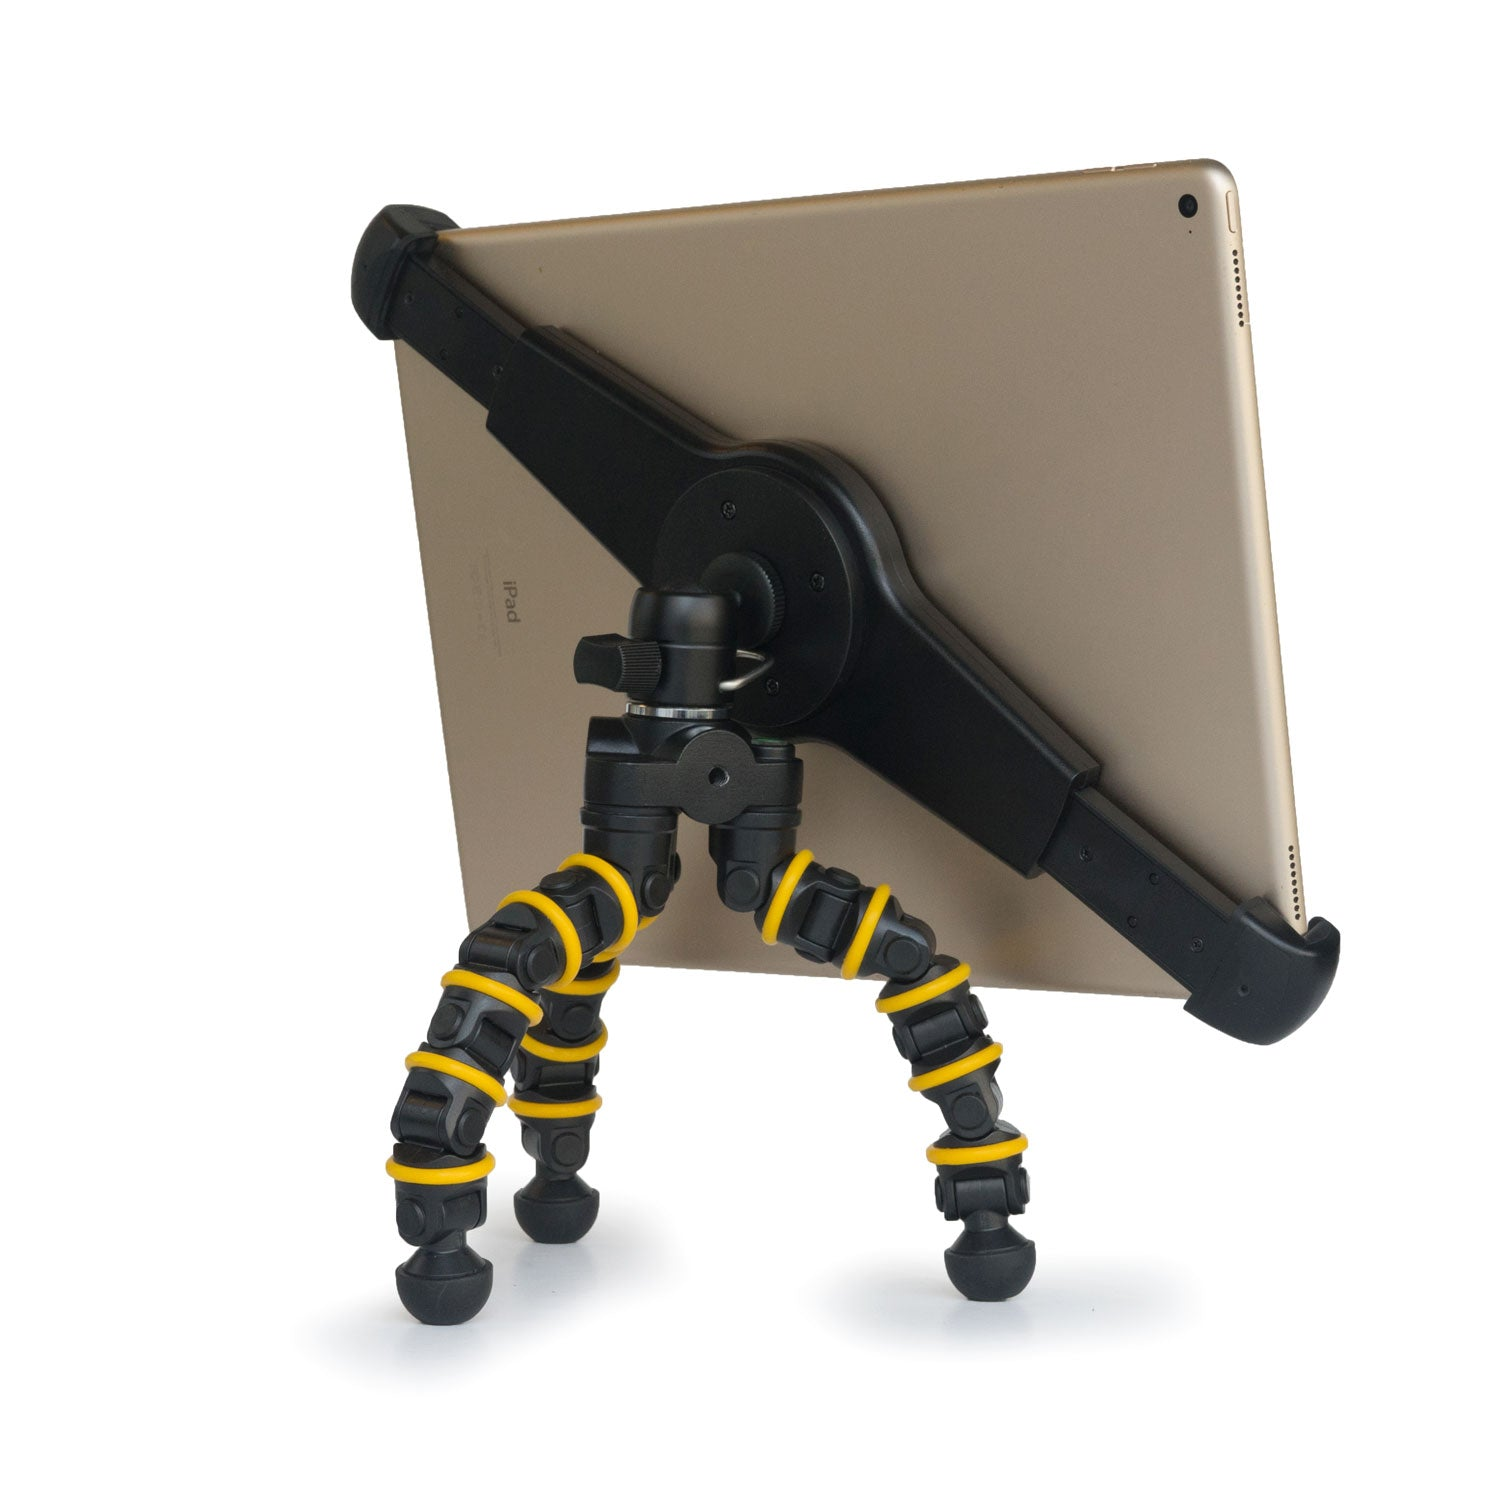 Grifiti Nootle ReCon 6 + Large Universal Tablet Mount - Grifiti